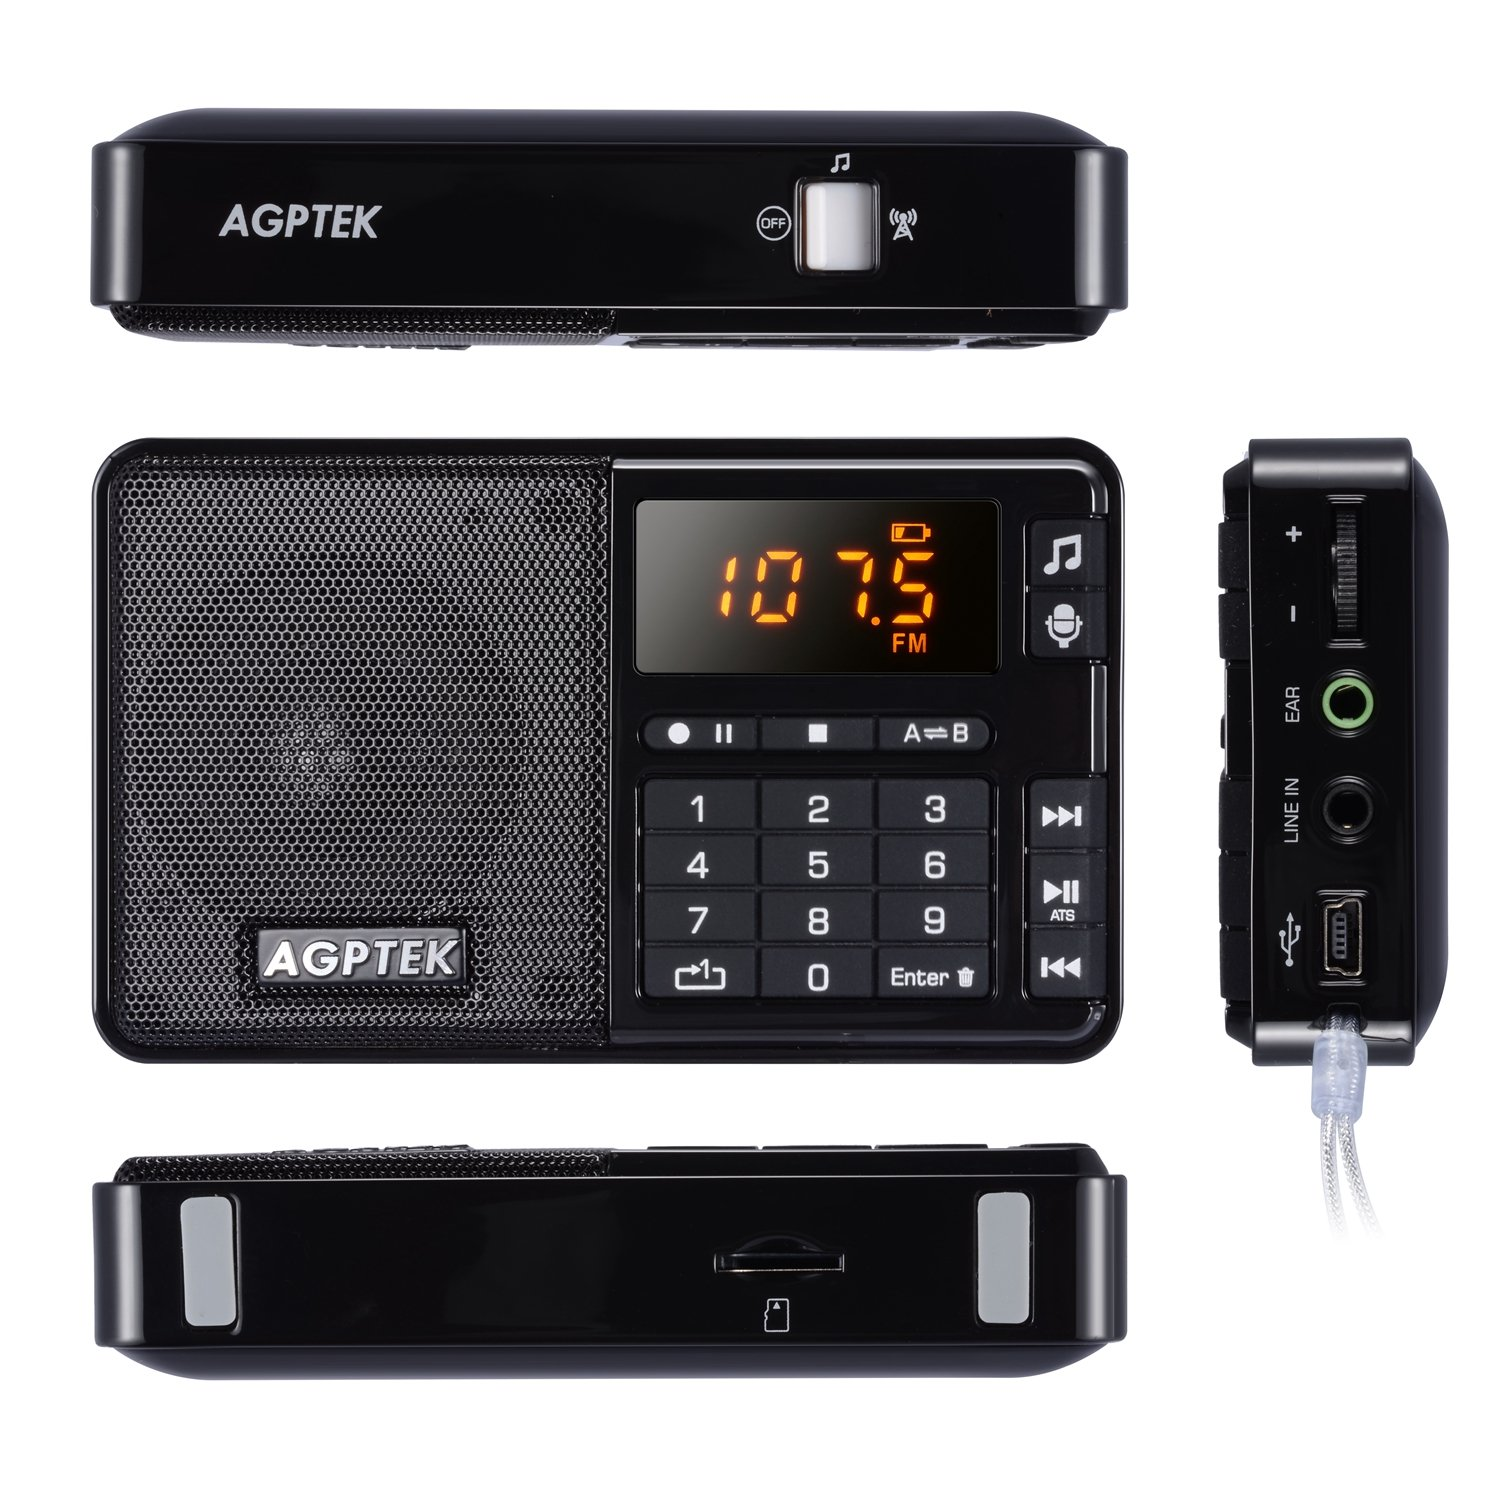 Amazon.com: AGPTek R08 Portable Mini MP3 Player, FM Radio and Line-In  Voice/Radio Recorder With Built-in Speaker, Supported Up To 32 GB SD Card  (Black): ...